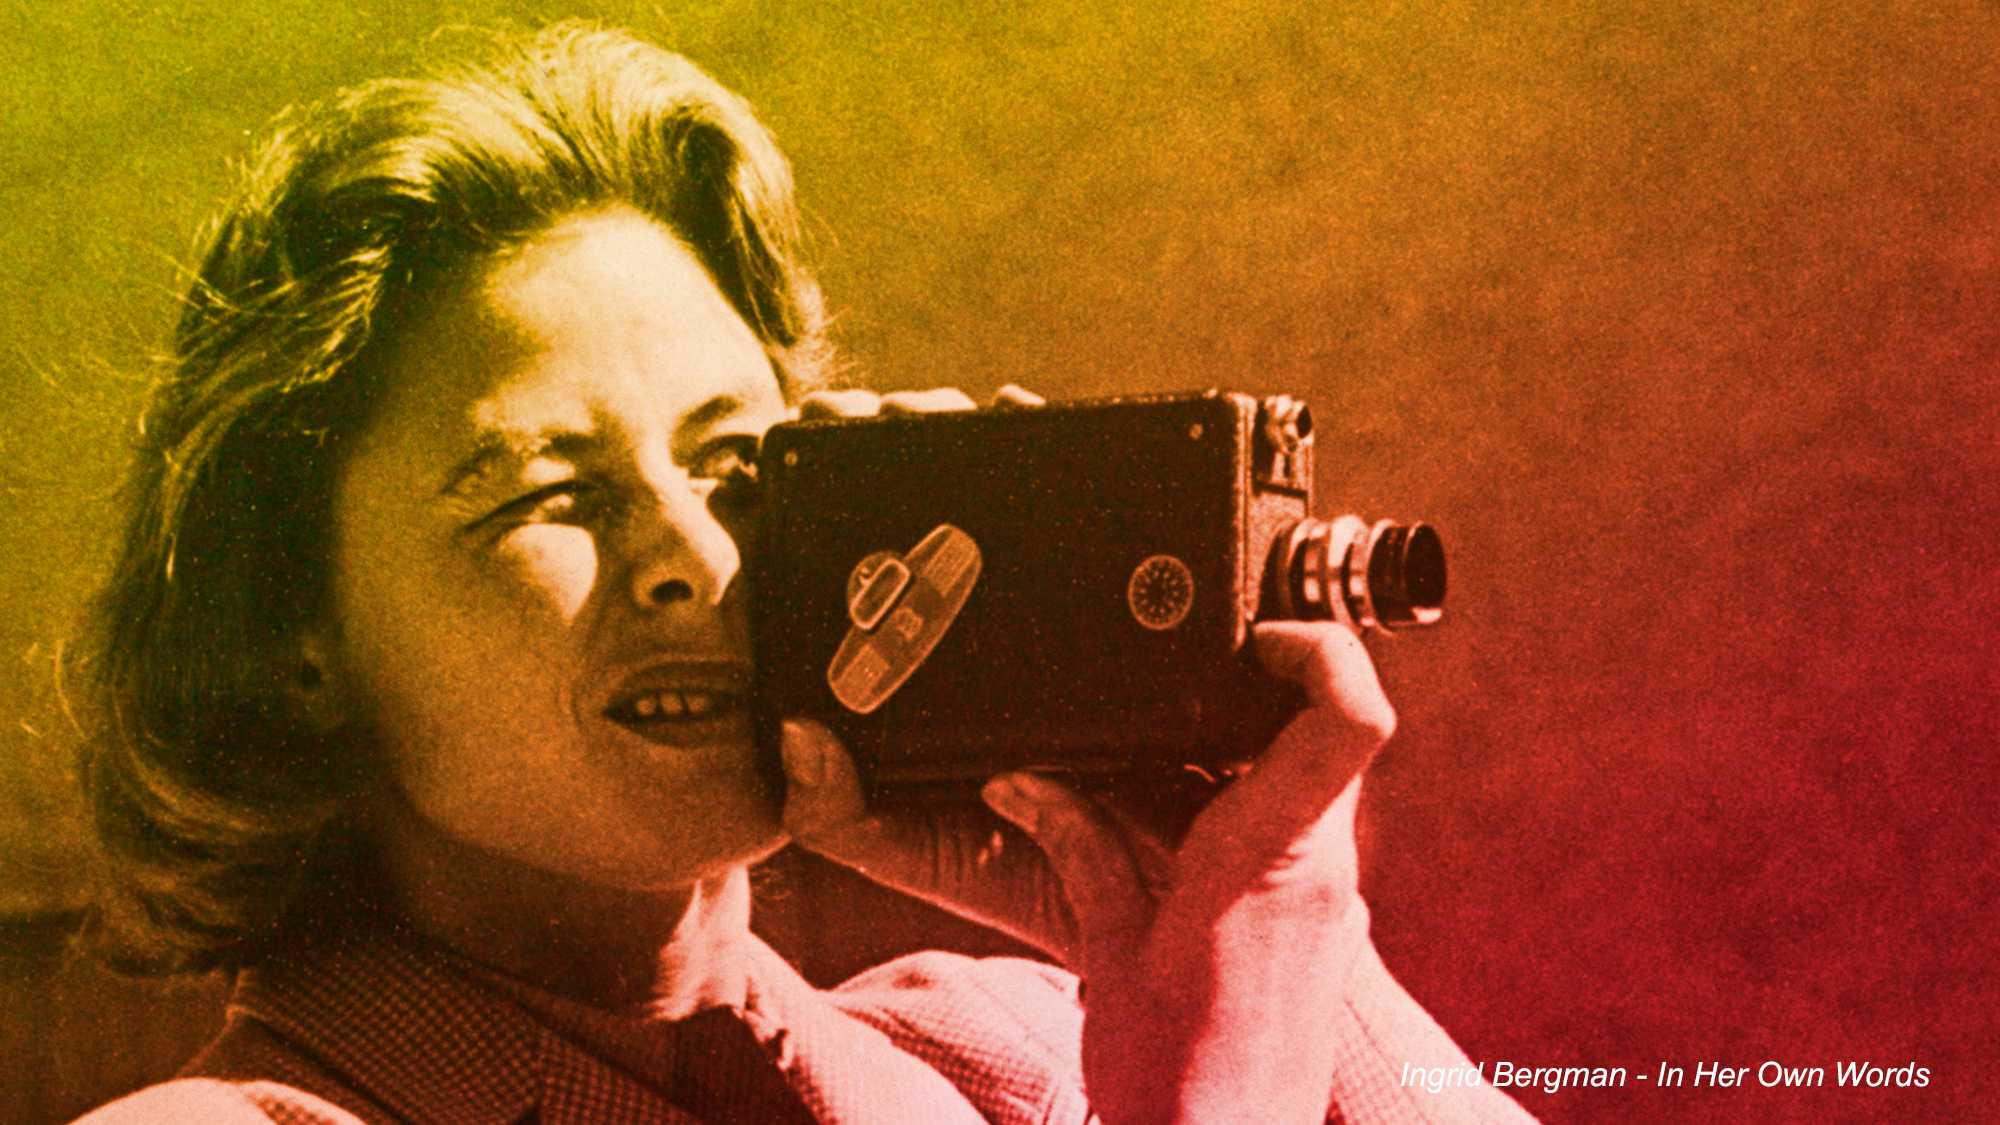 Ingrid Bergman – In Her Own Words (image 2)